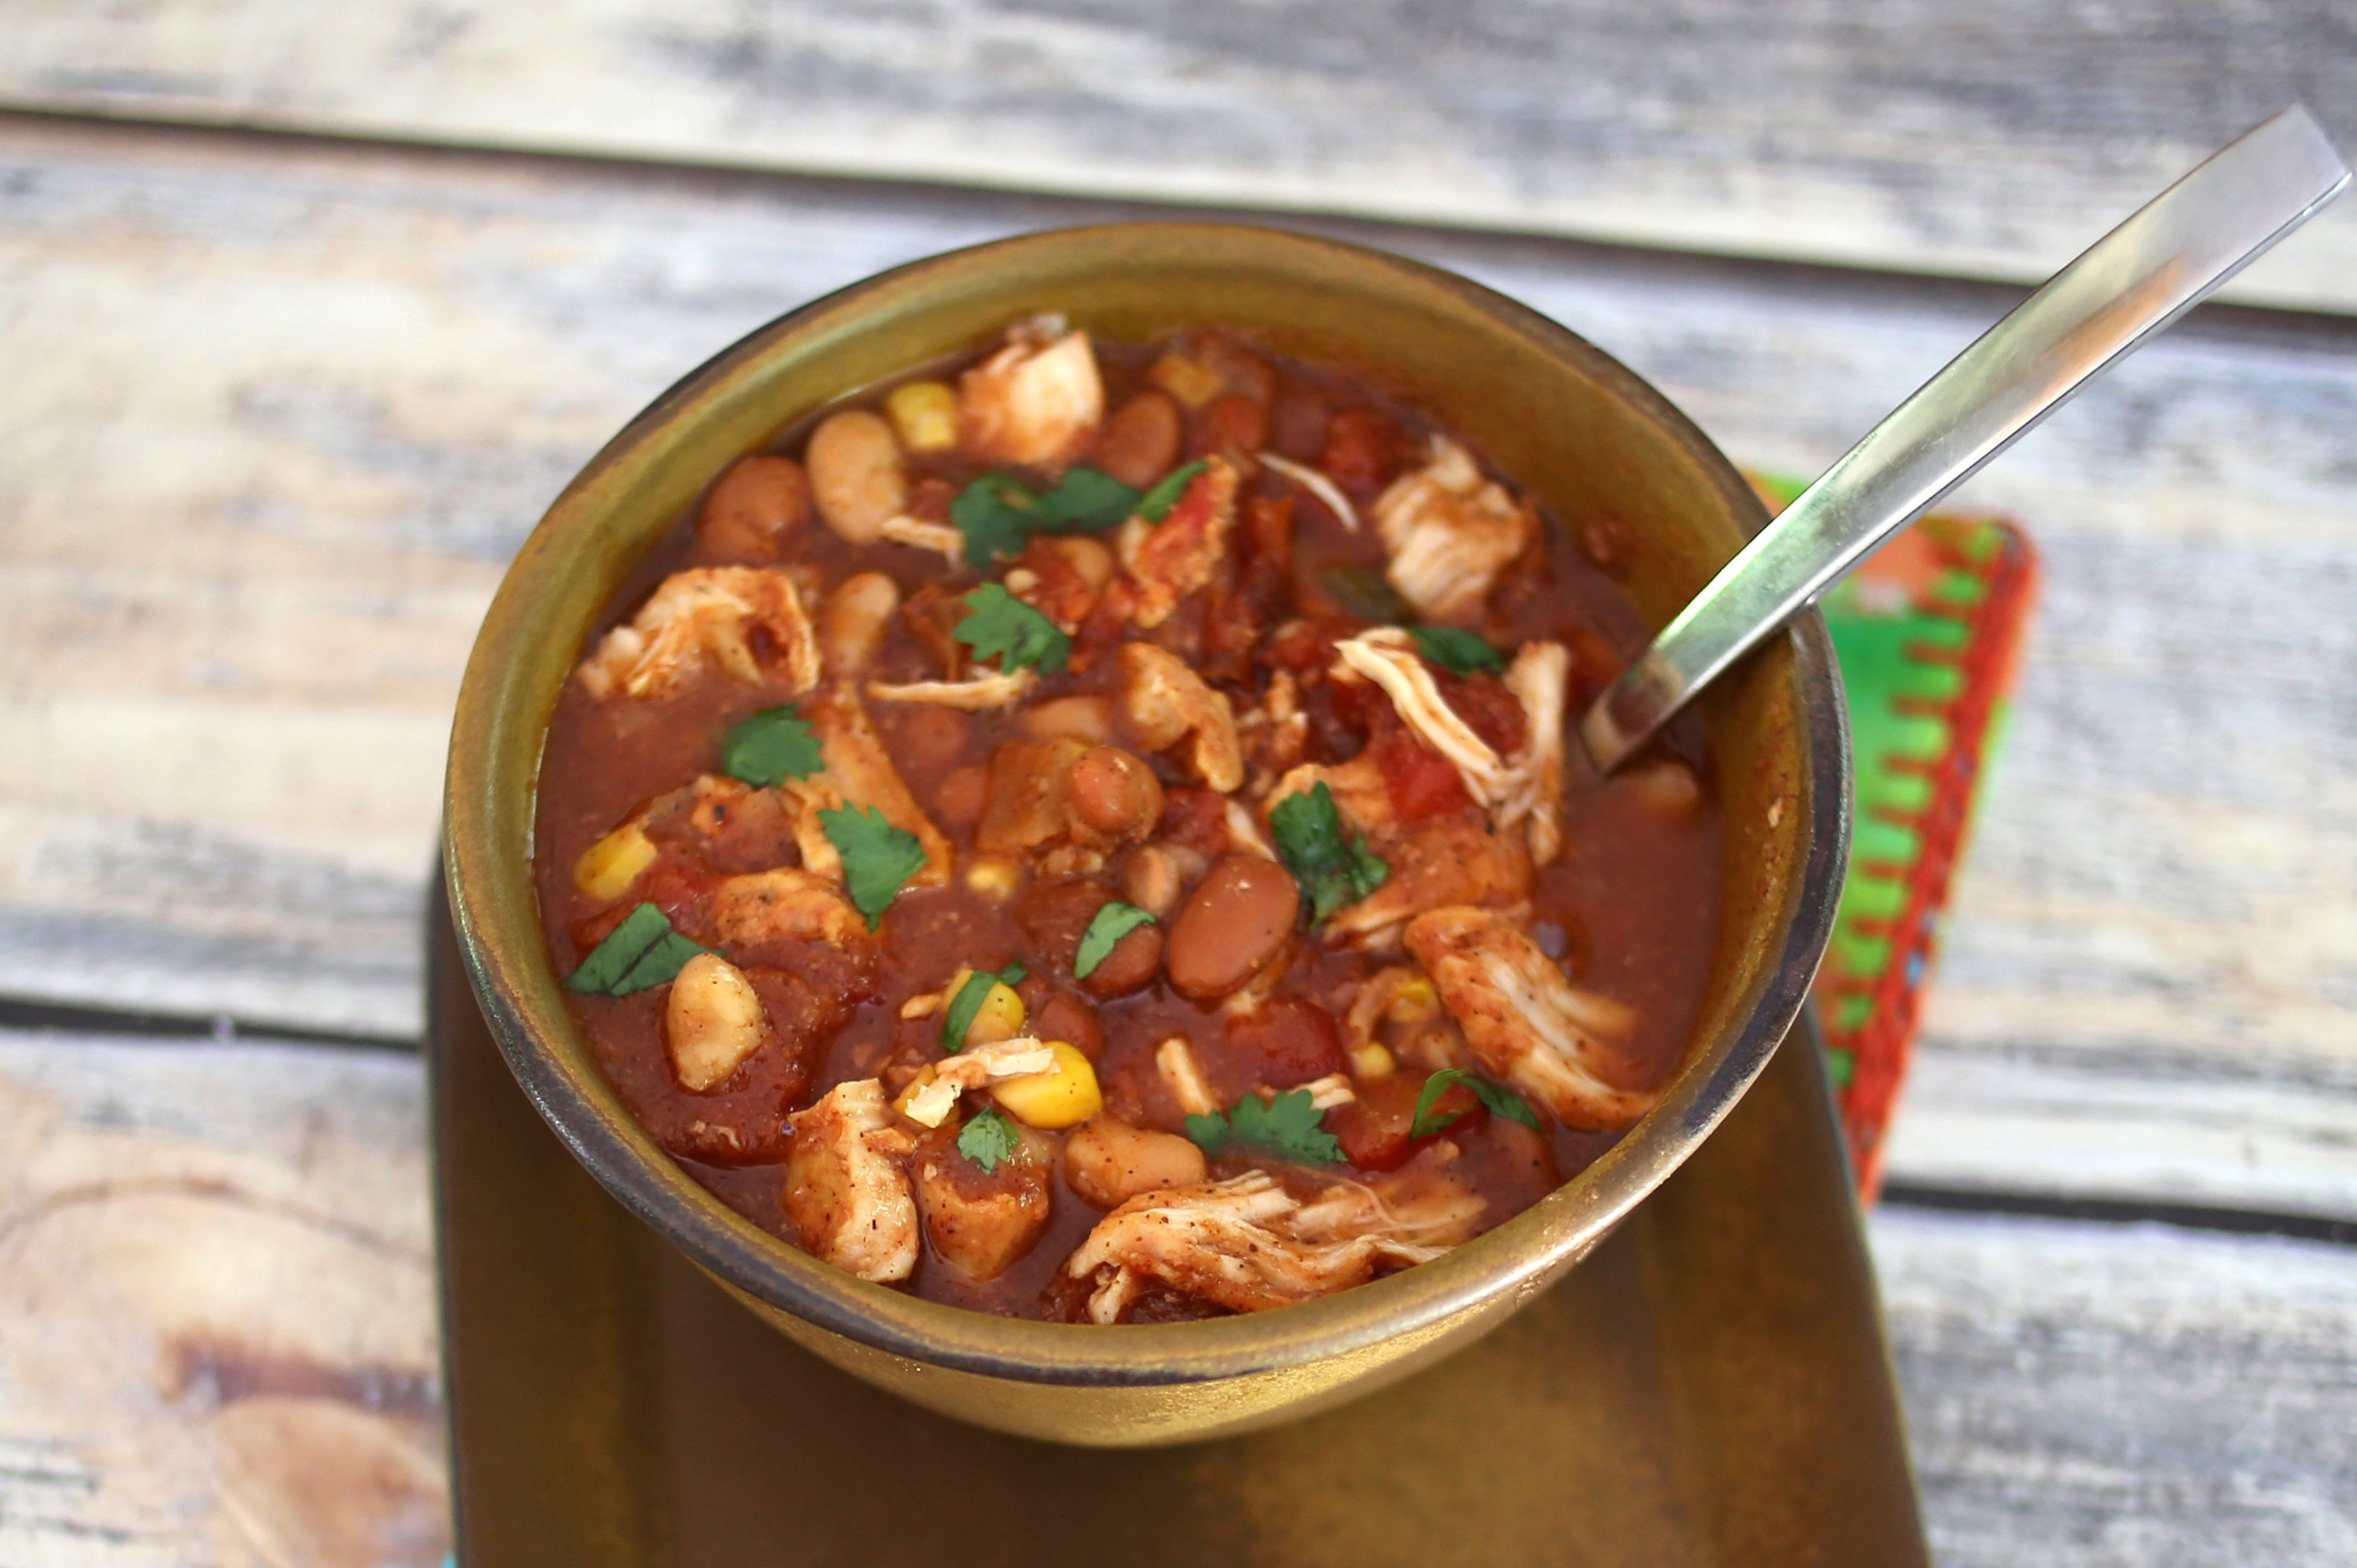 Spicy Delicious Chicken Chili Stew Recipe